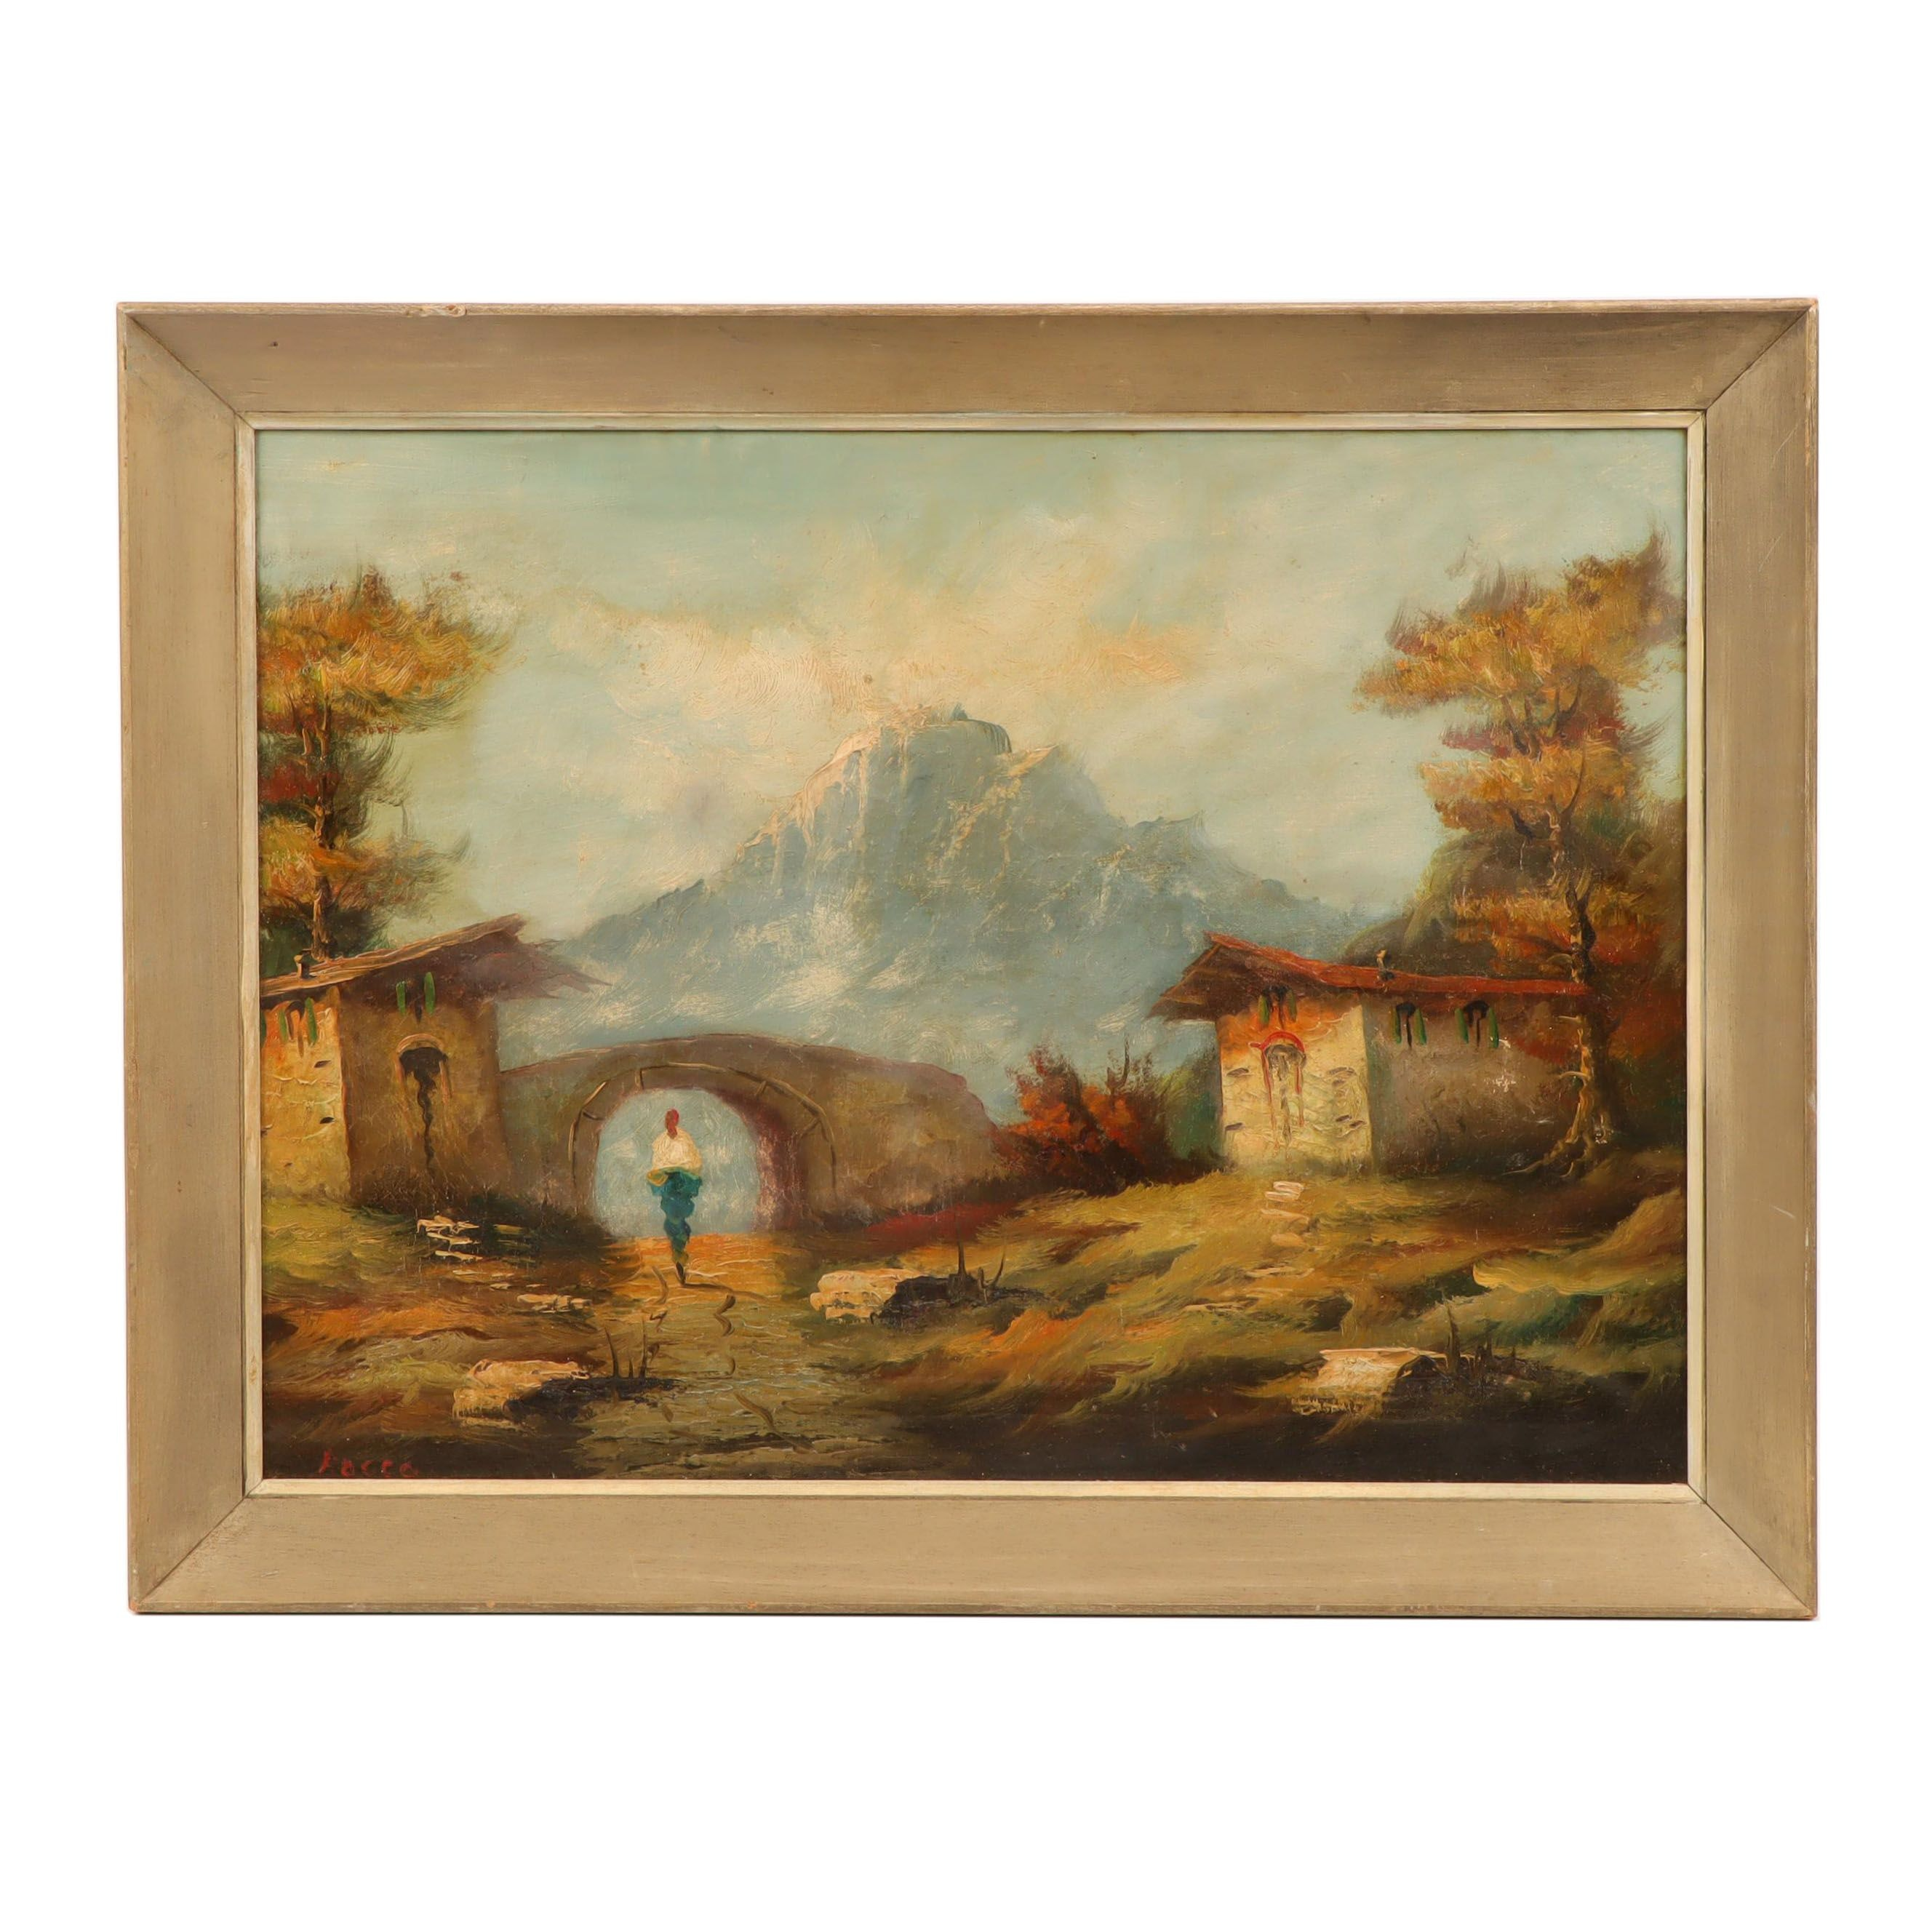 Rocco Oil Painting of Alpine Scene with Figure